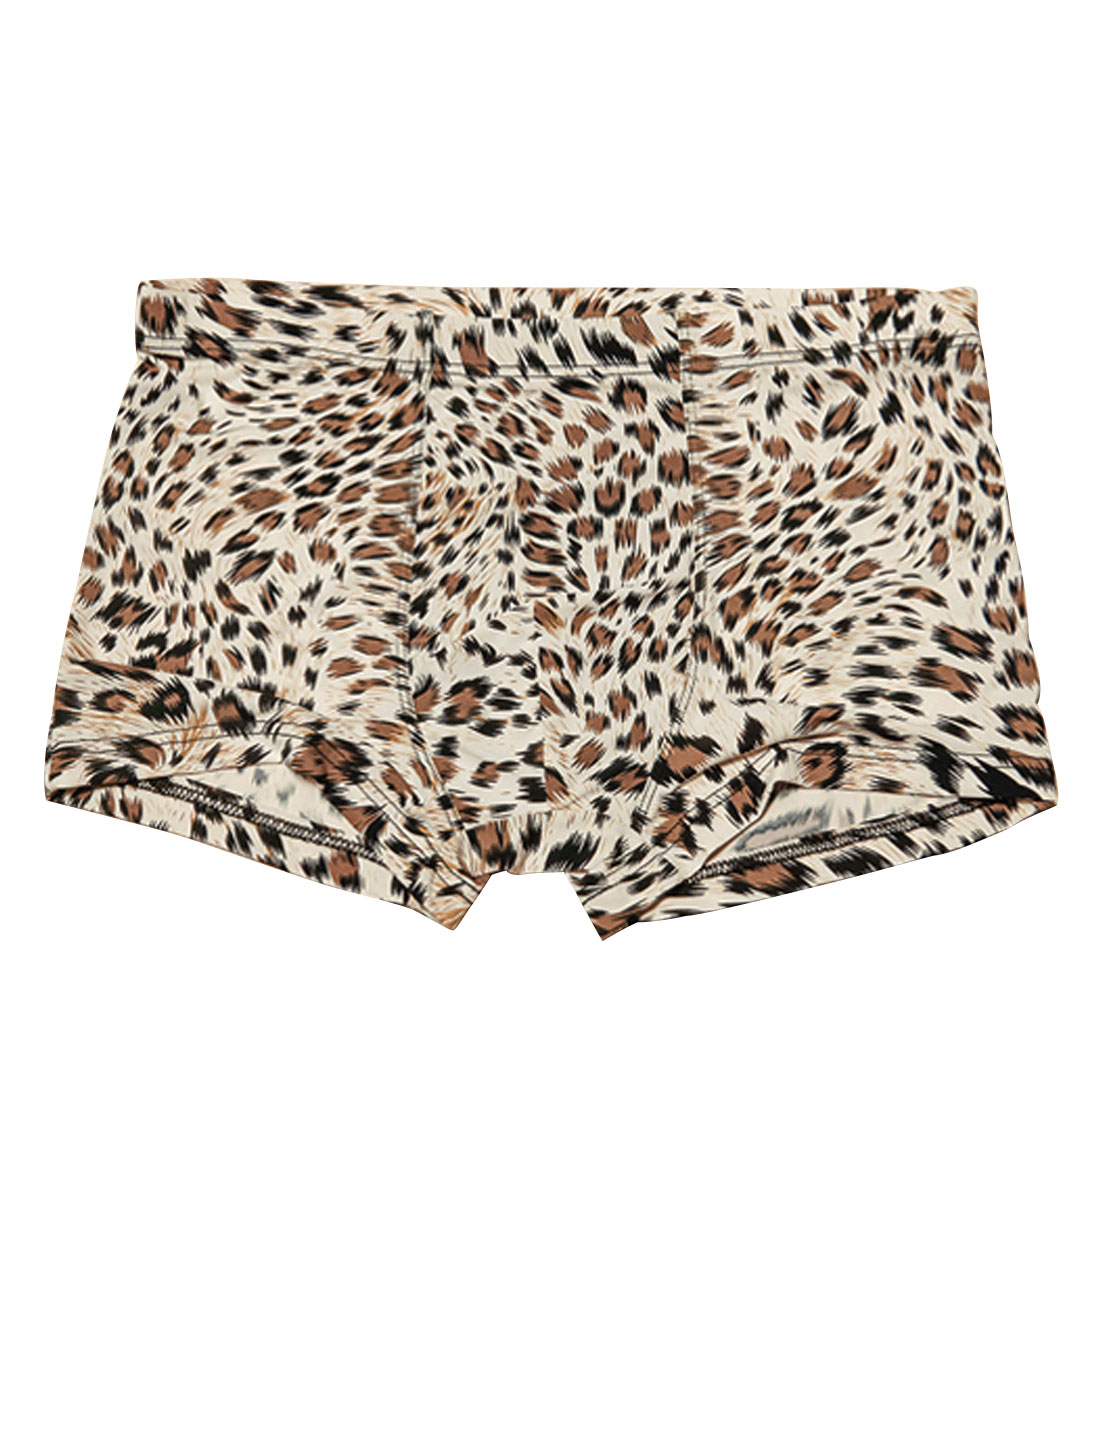 Men Stretch Waist Leopard Print Fashion Boxer Briefs Beige Brown W30